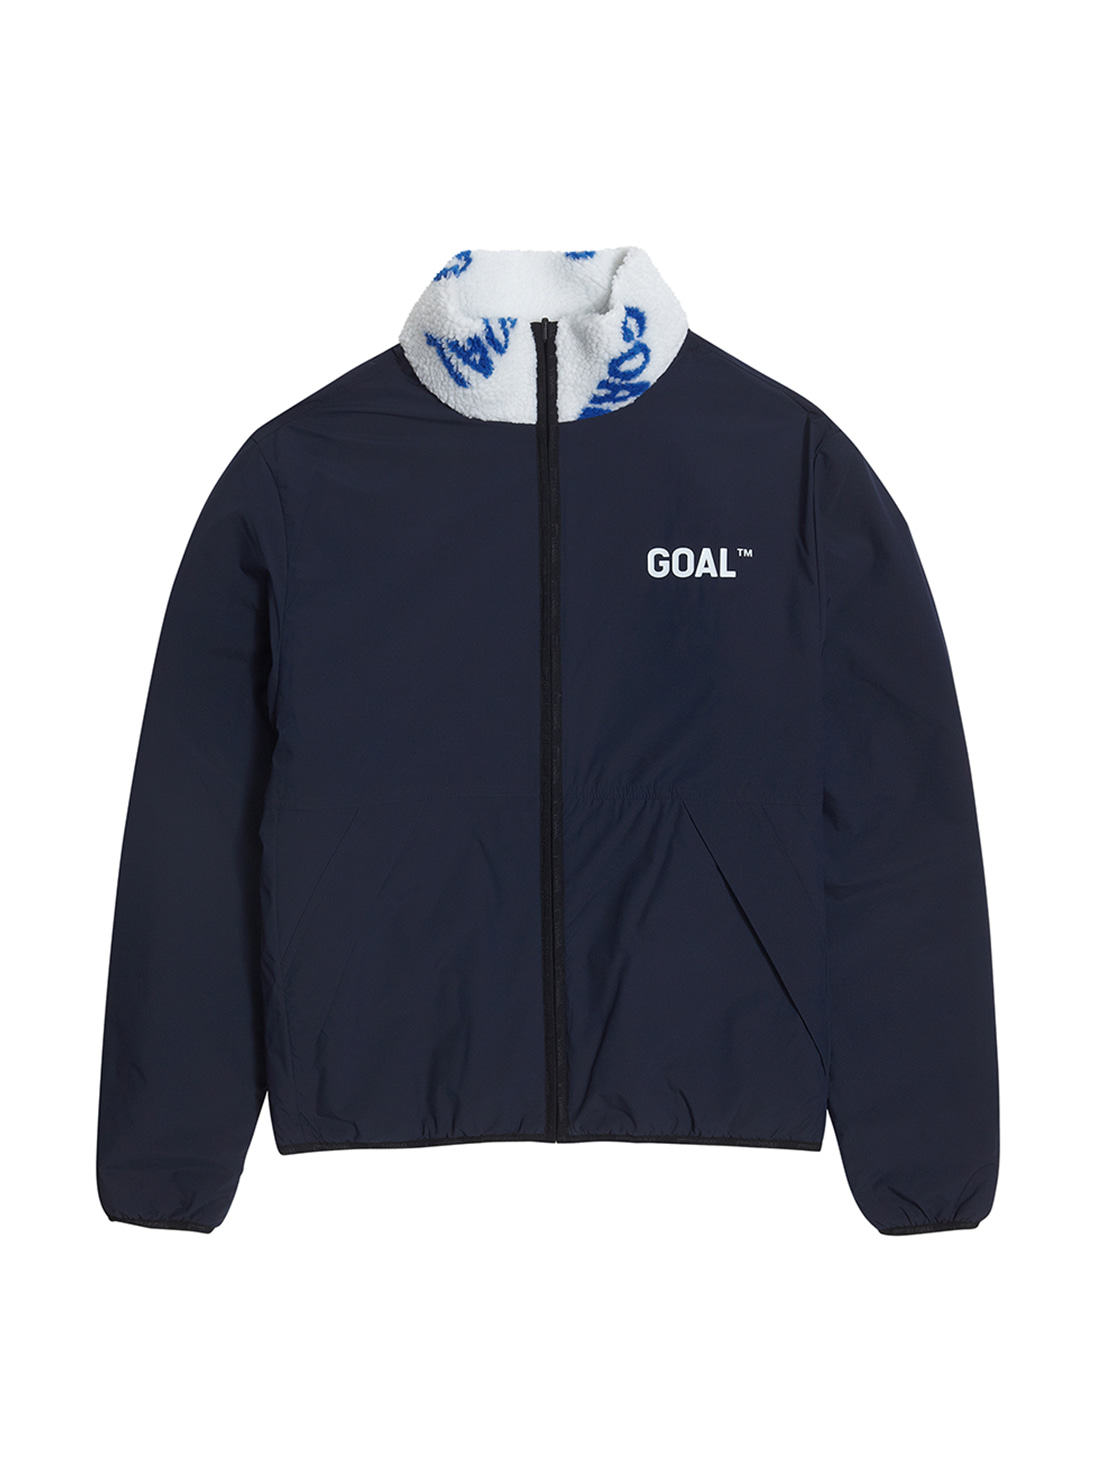 (Sold Out) REVERSIBLE FLEECE JACKET - WHITE/NAVY - 1차 완판(2차 입고 완료)